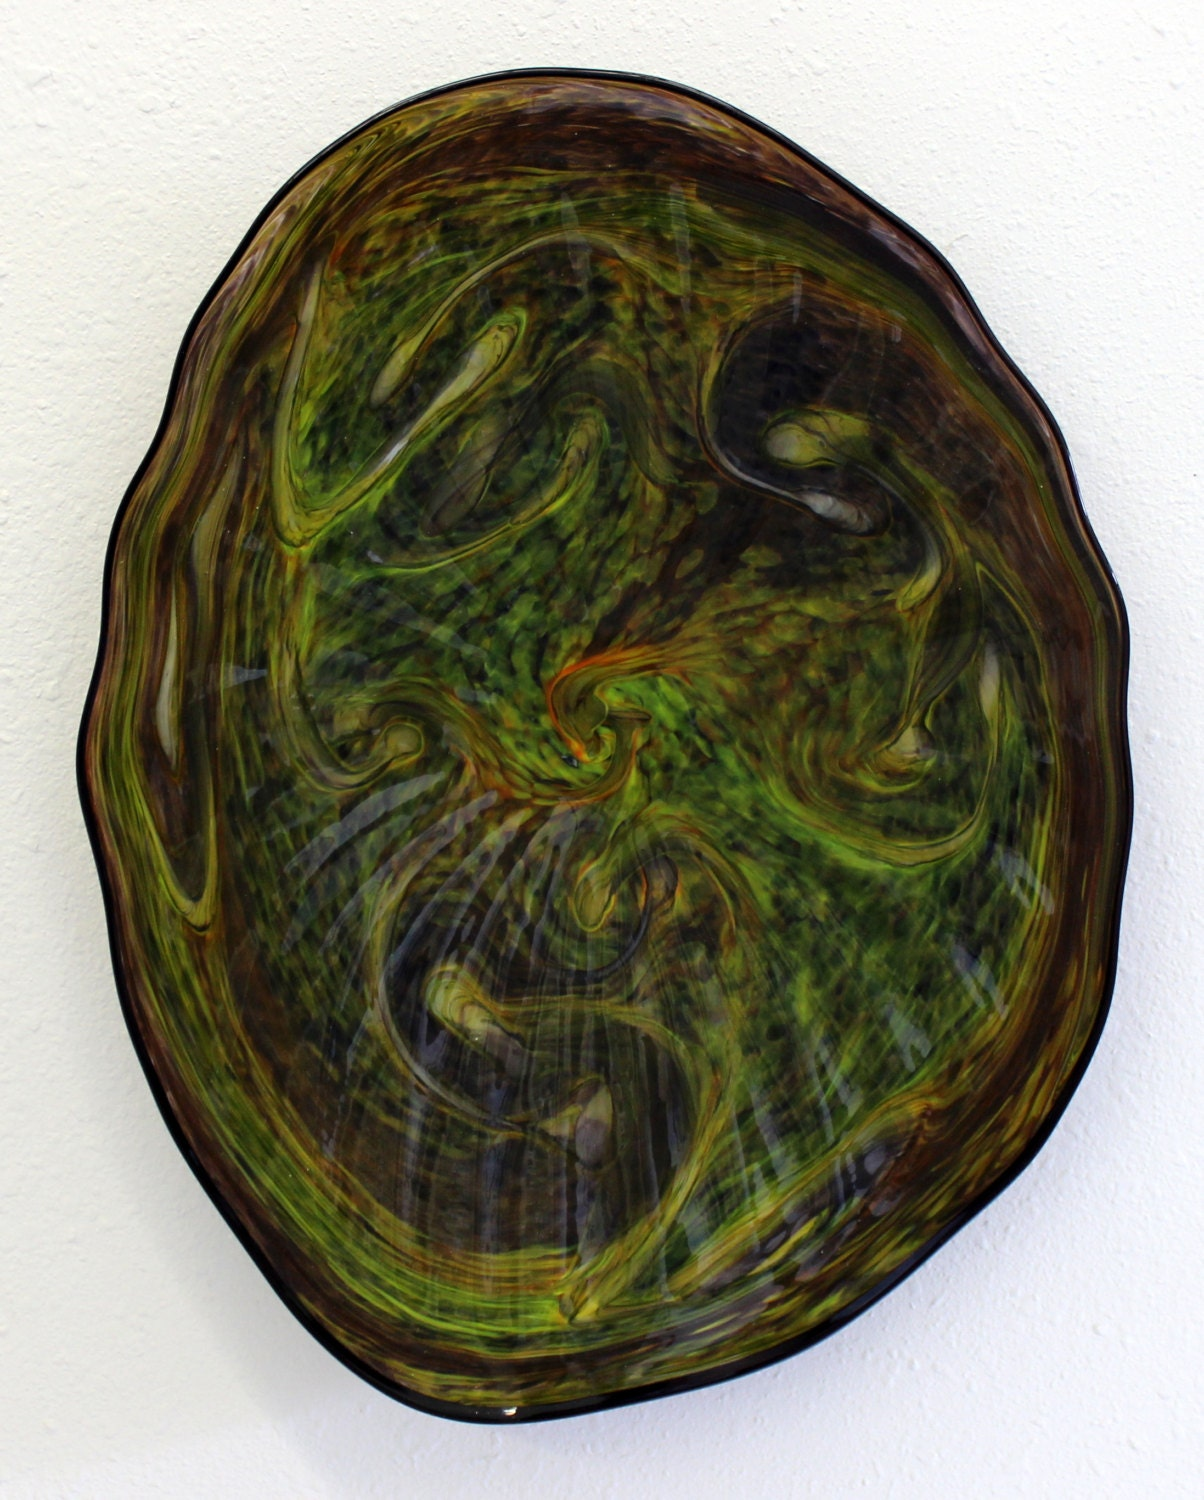 Blown Glass Wall Decor : Beautiful hand blown glass art wall platter bowl oneil